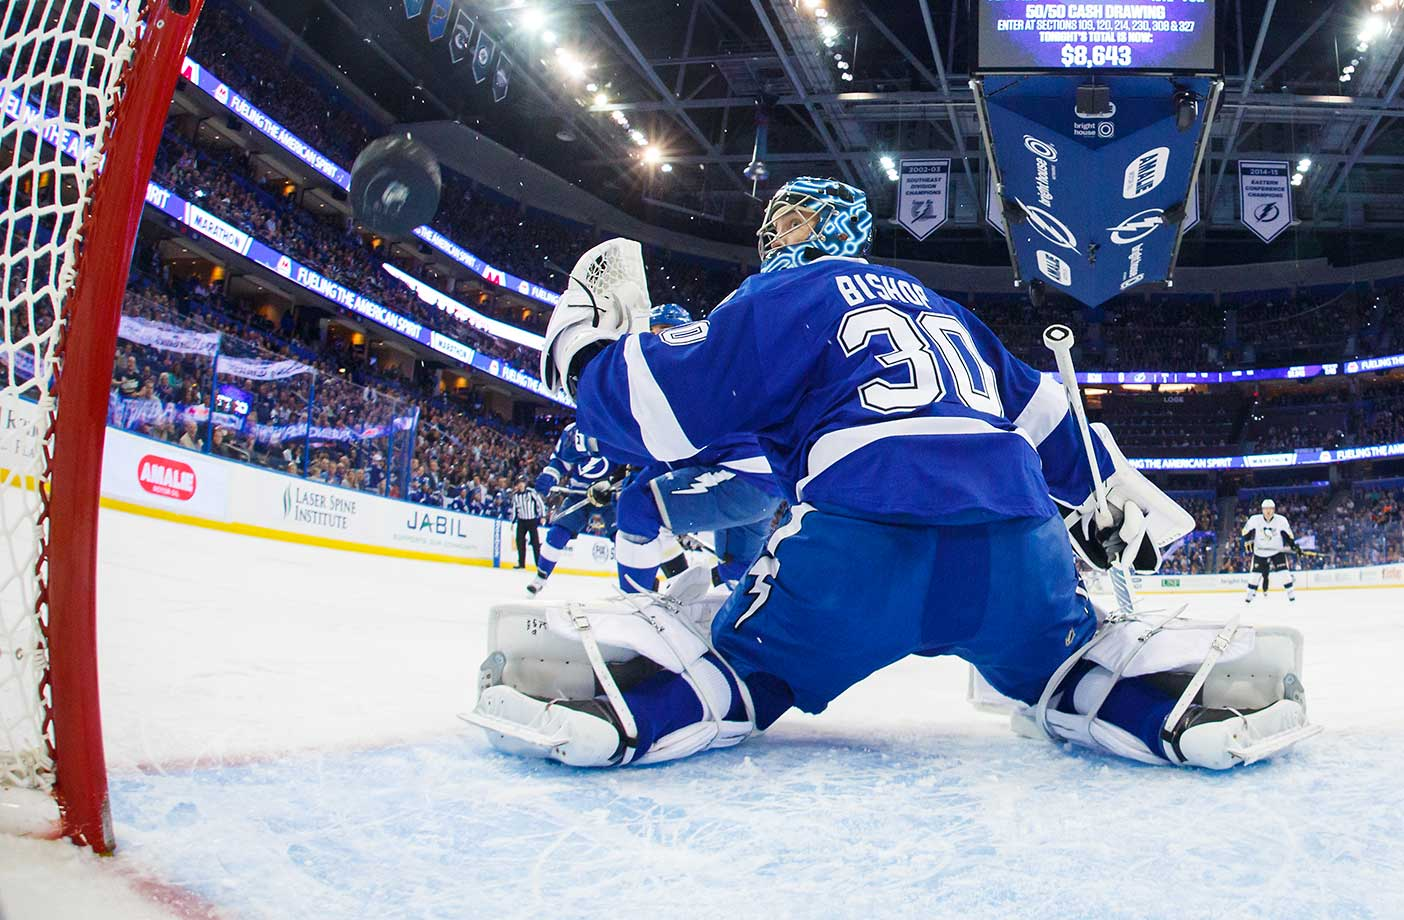 The puck flies by goalie Ben Bishop of the Tampa Bay Lightning for a goal in Friday's game against the Pittsburgh Penguins.